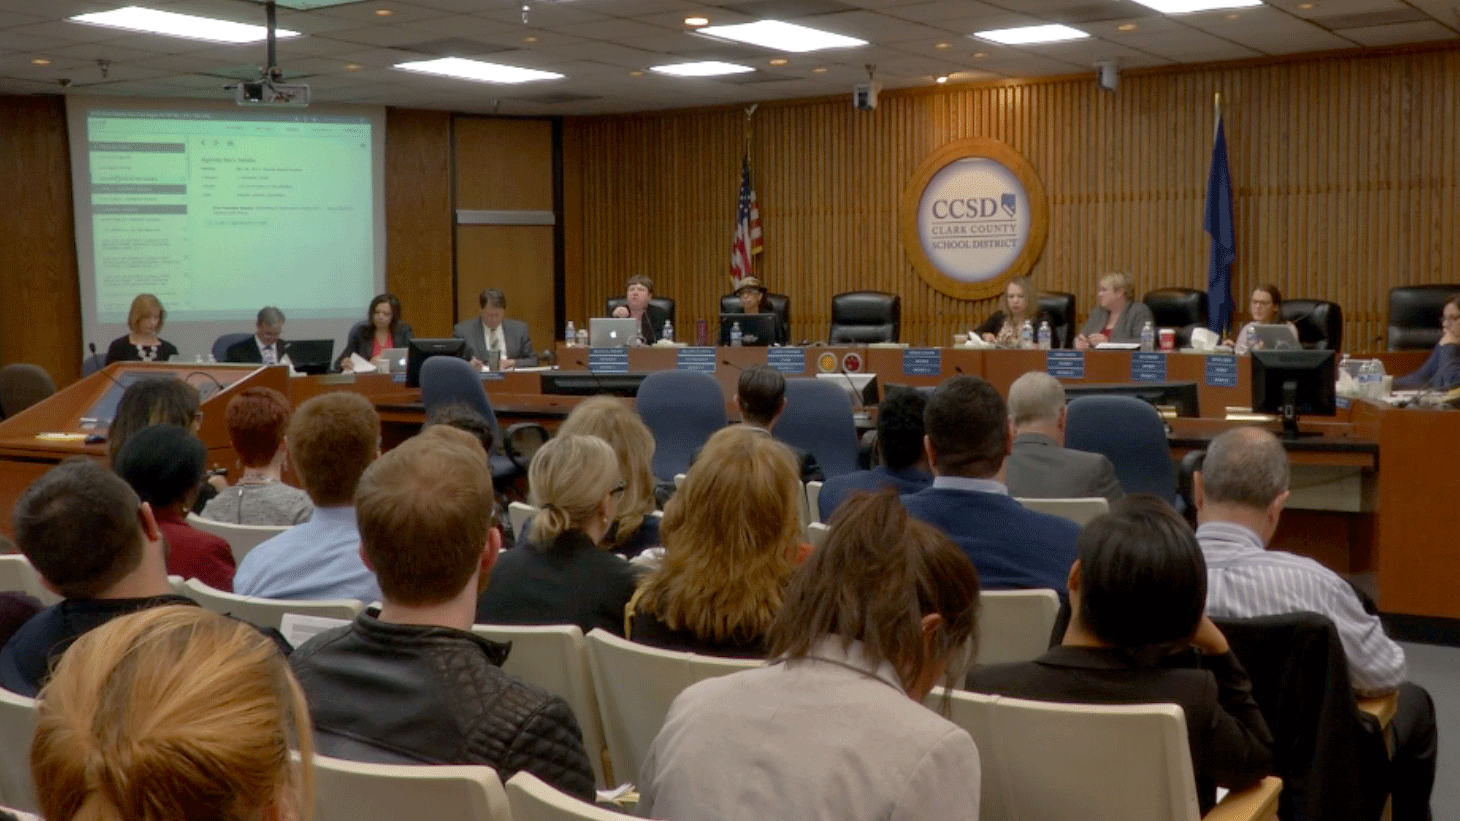 The Clark County school board approved another round of budget cuts during a meeting on Nov. 30, 2017. (CCSD)